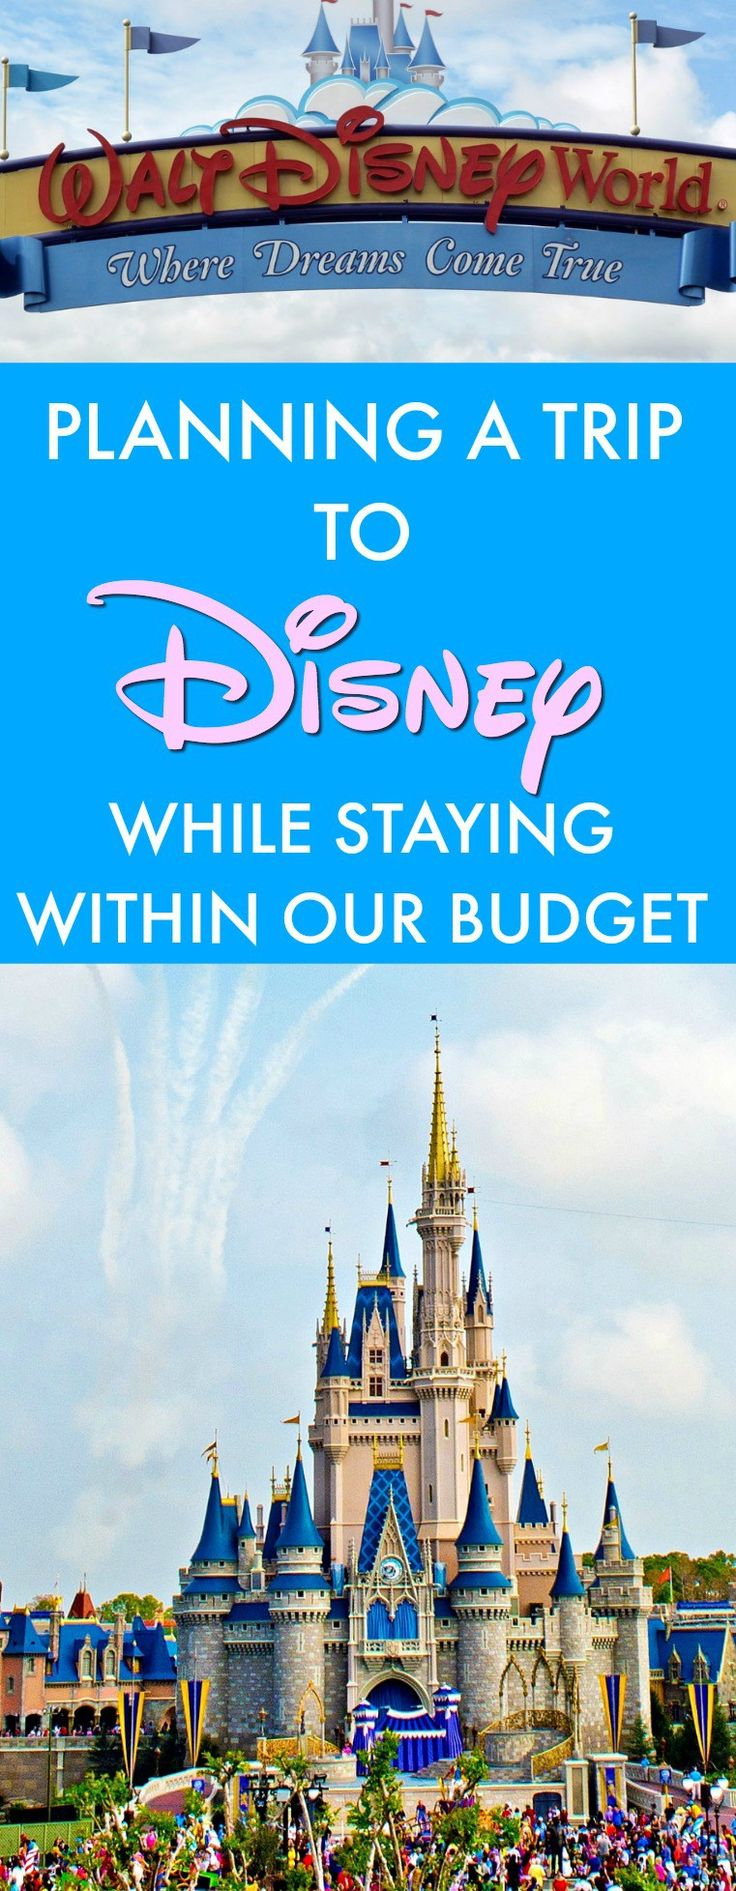 Disney vacation: Planning a Trip to Disney World While Staying Within our Budget